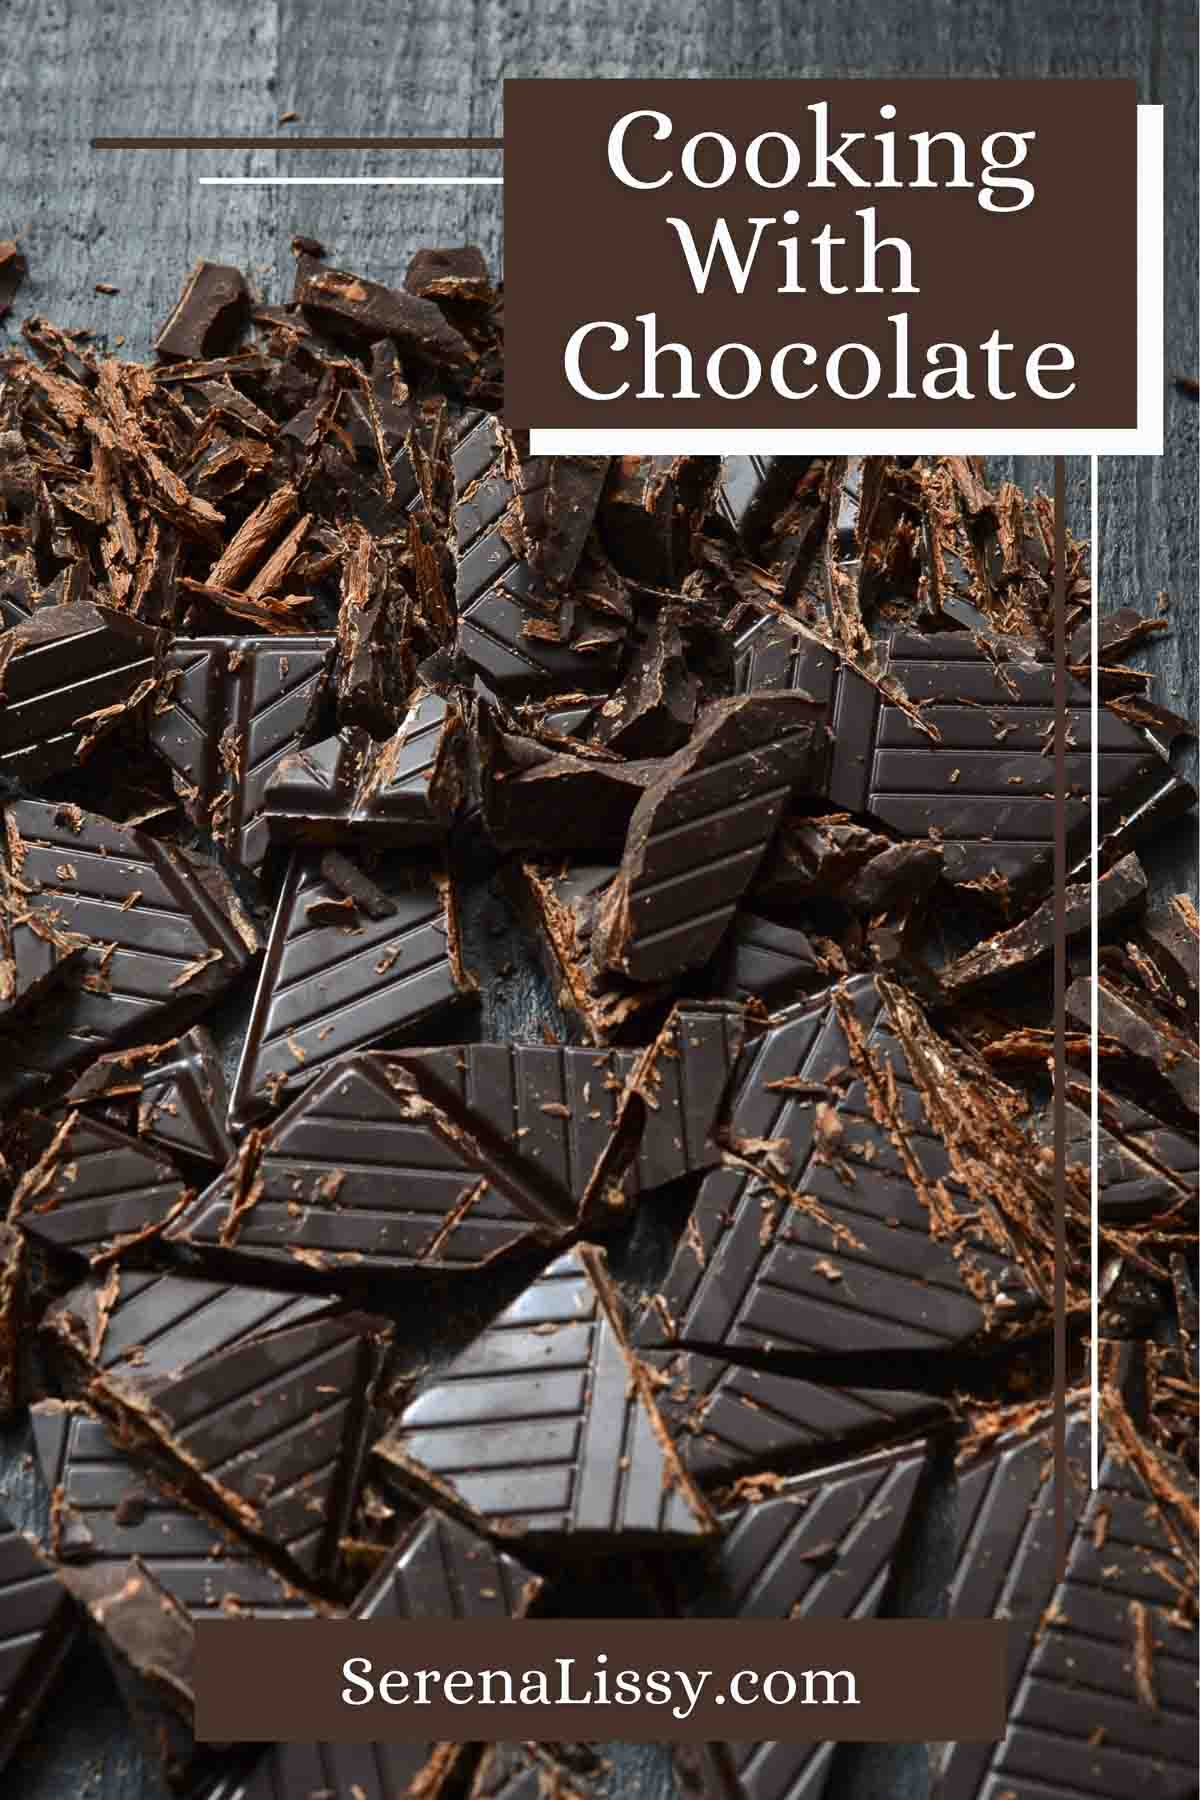 Chopped Up Chocolate used for baking